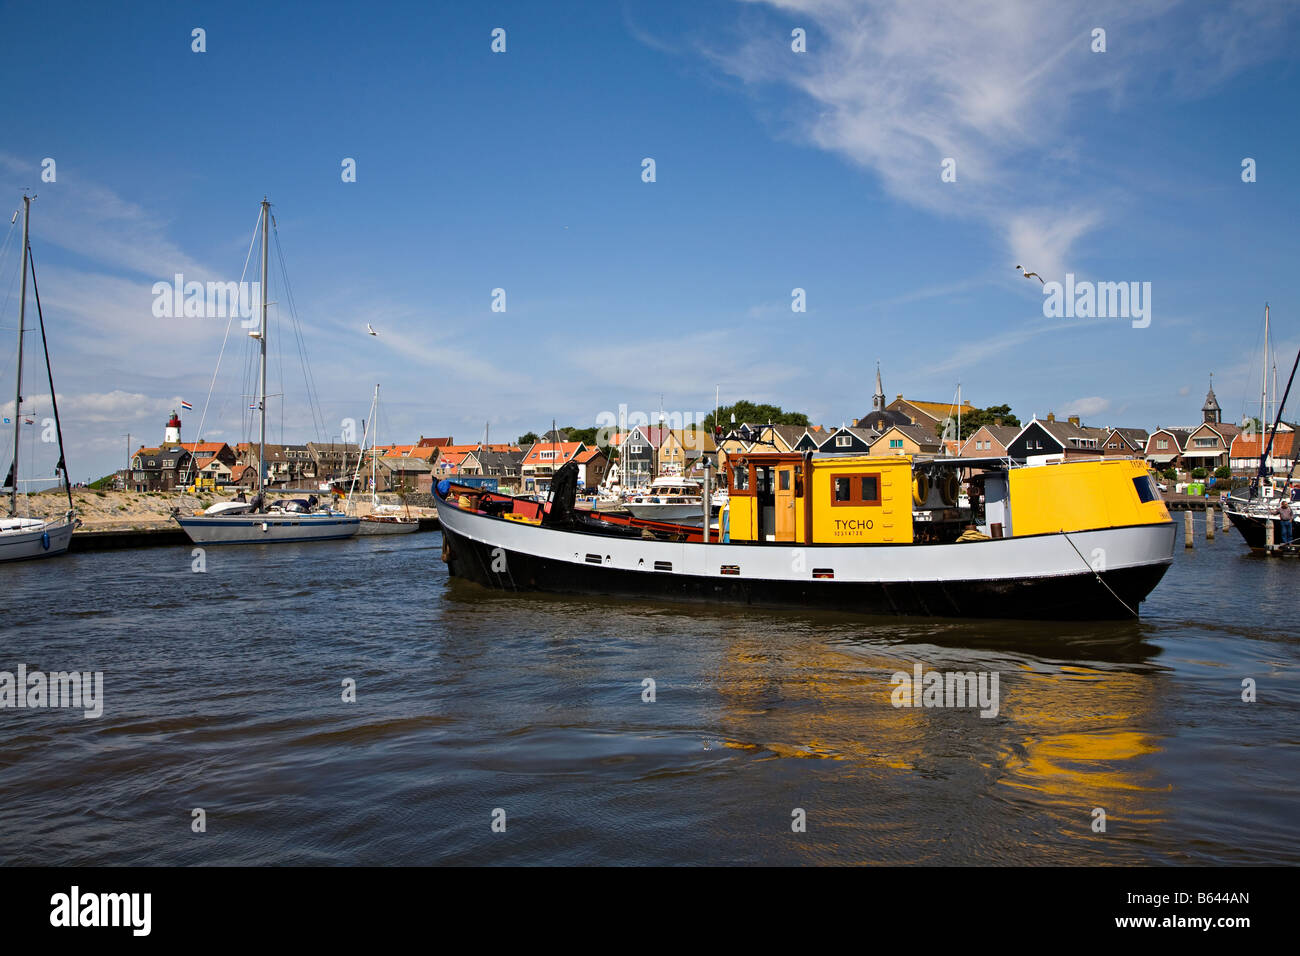 Fishing boats in harbour Urk Netherlands - Stock Image